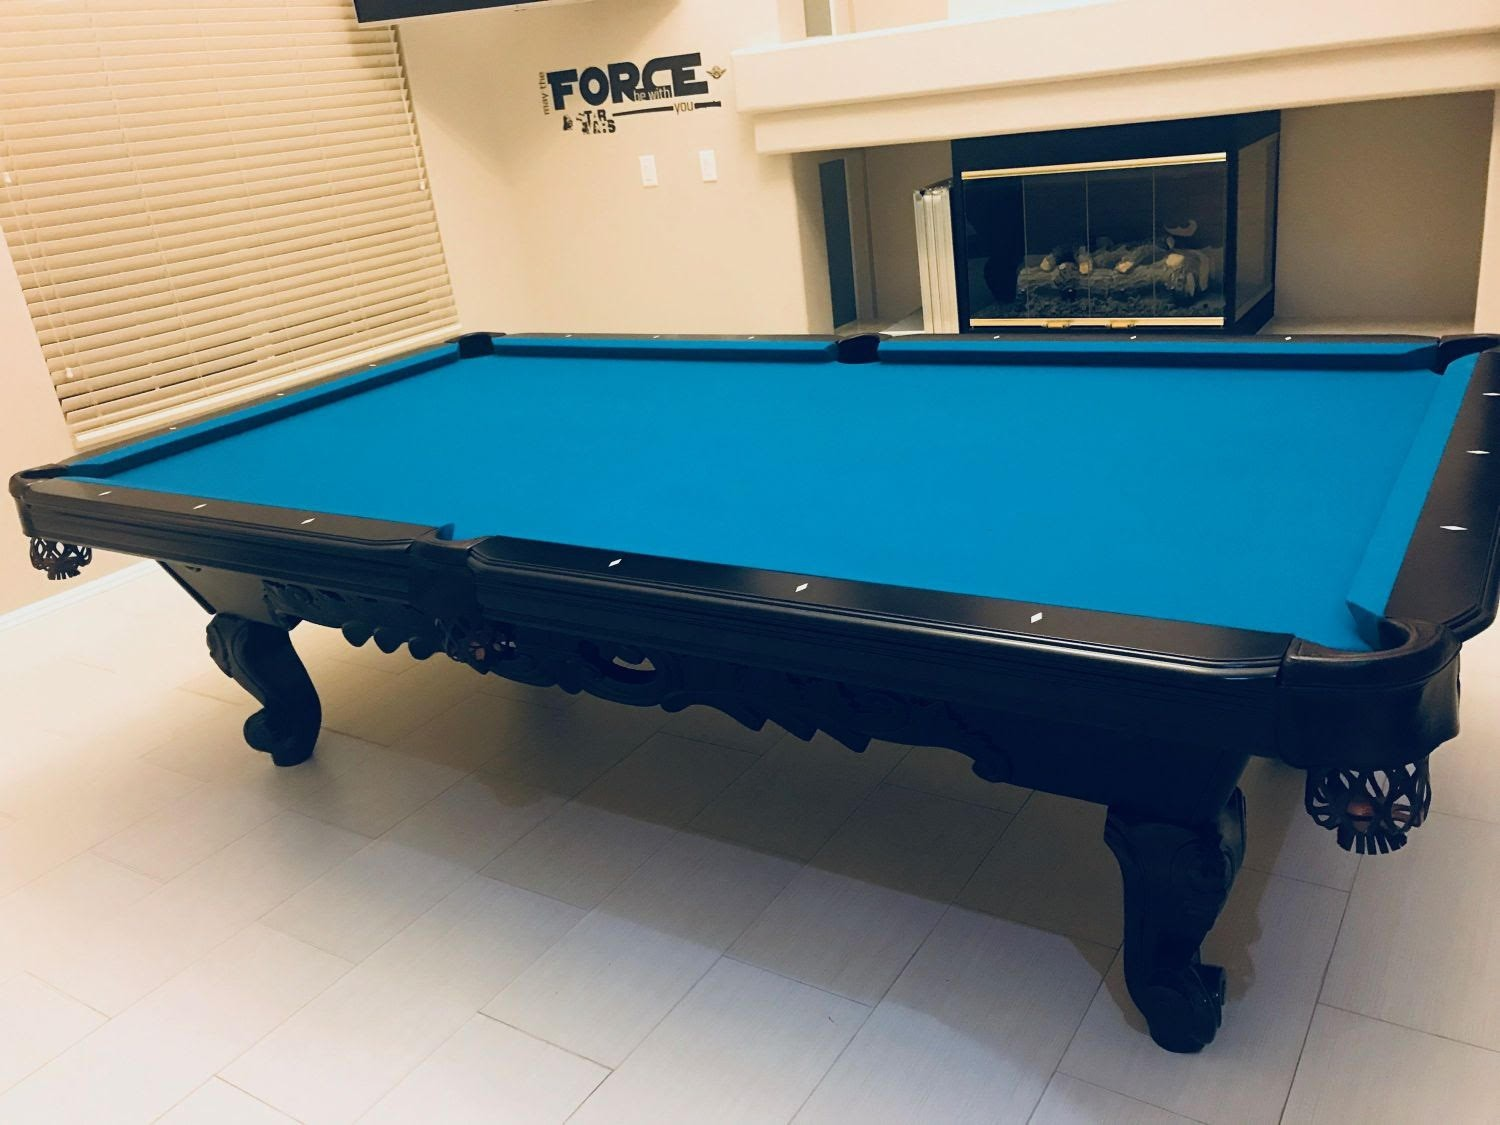 Buying A Used Pool Table? | Heres what to look for